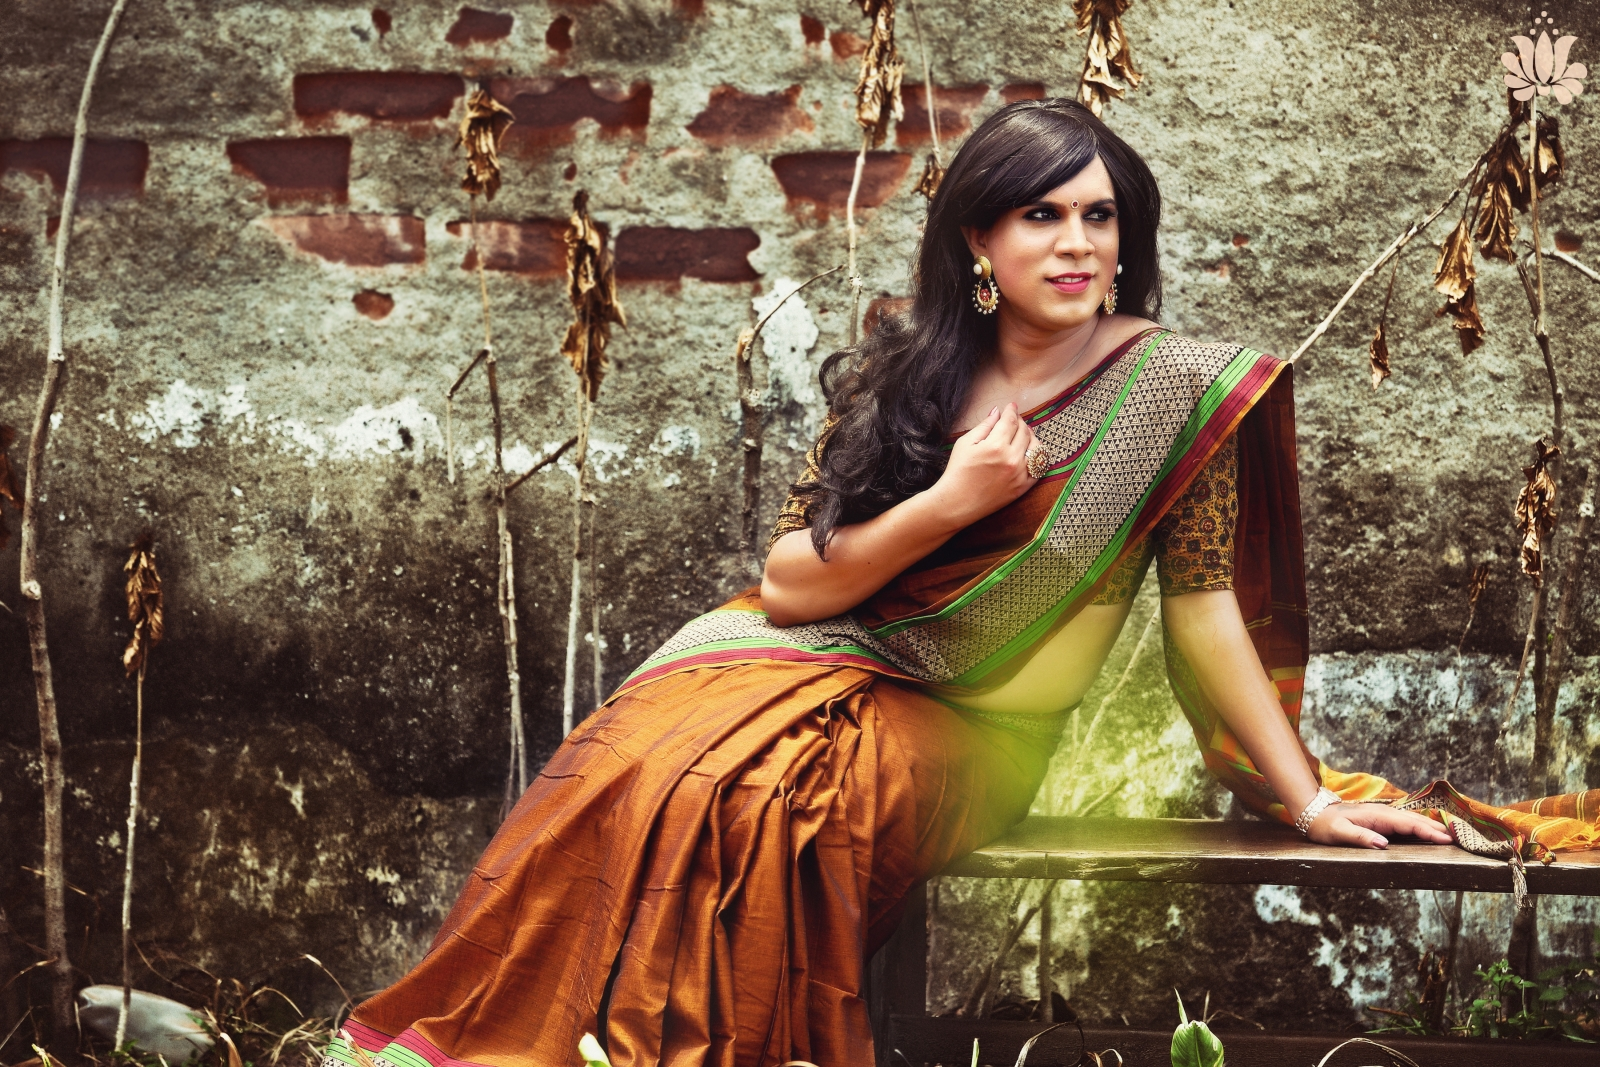 transgender issues in india Gender matters is a project from centre for social research in new delhi, india we enjoy writing about and discussing any and all matters relating to gender.